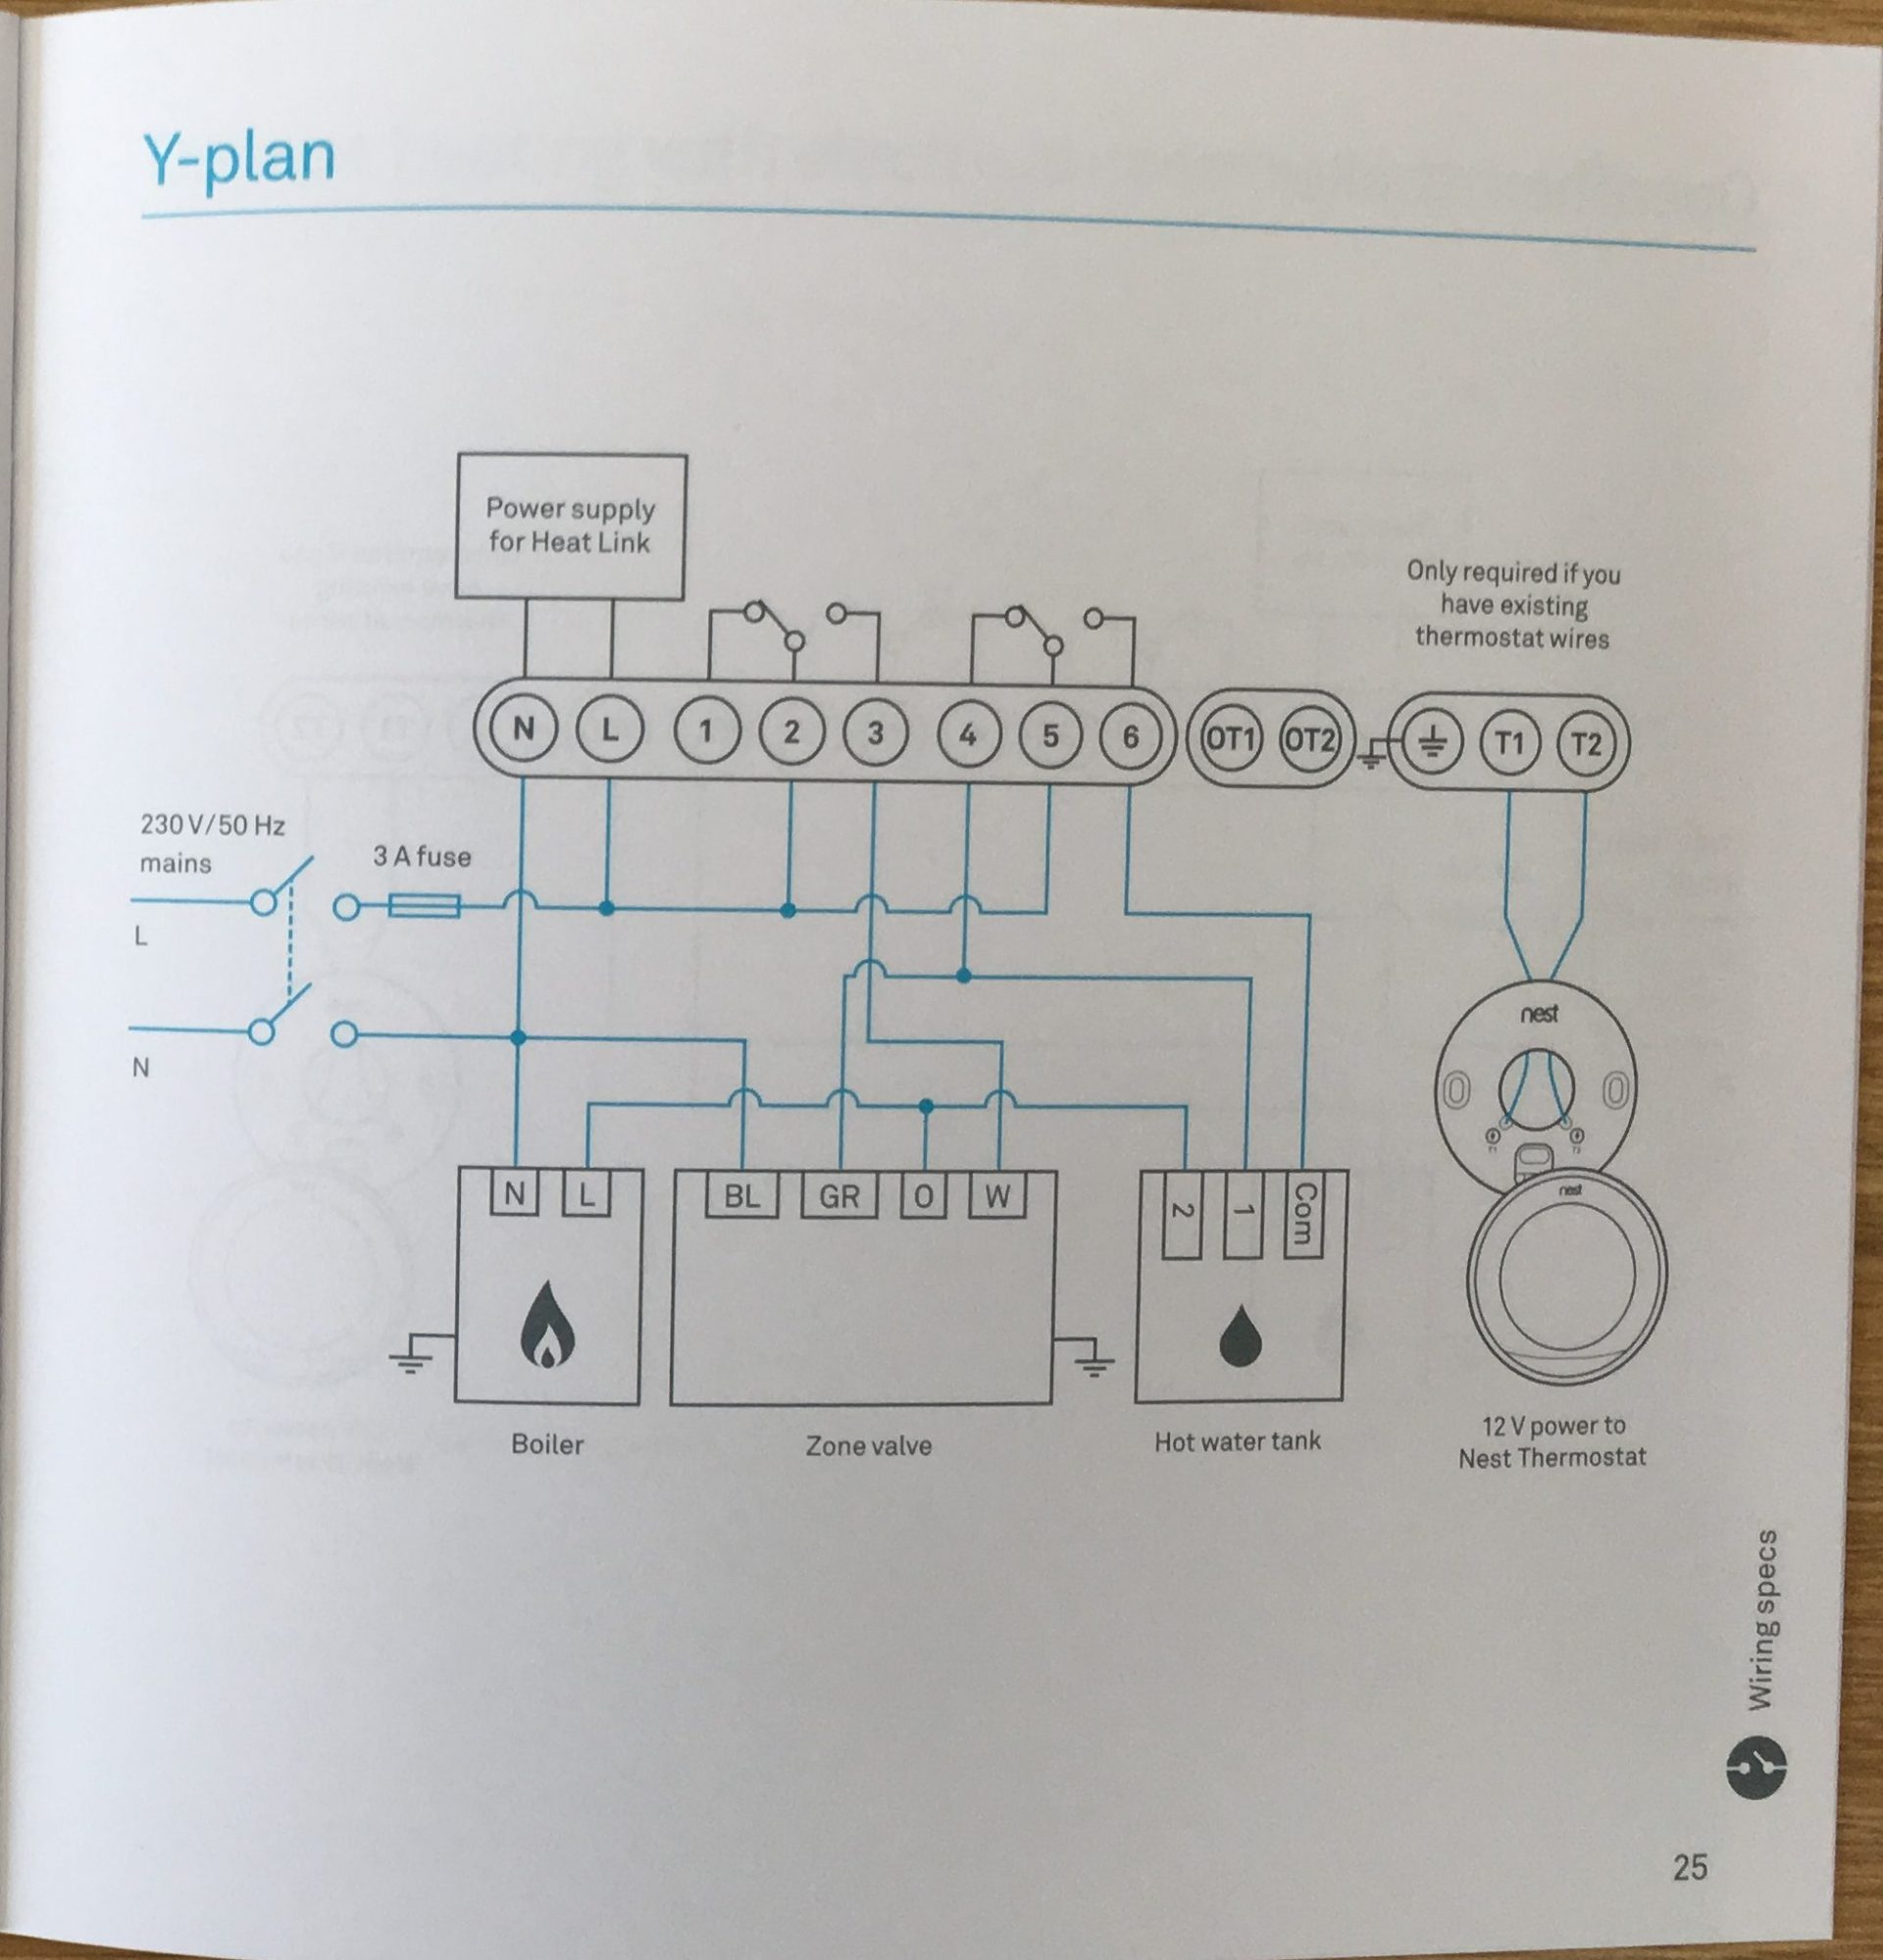 How To Install The Nest Learning Thermostat (3Rd Gen) In A Y-Plan - Thermostat Wiring Diagram Nest